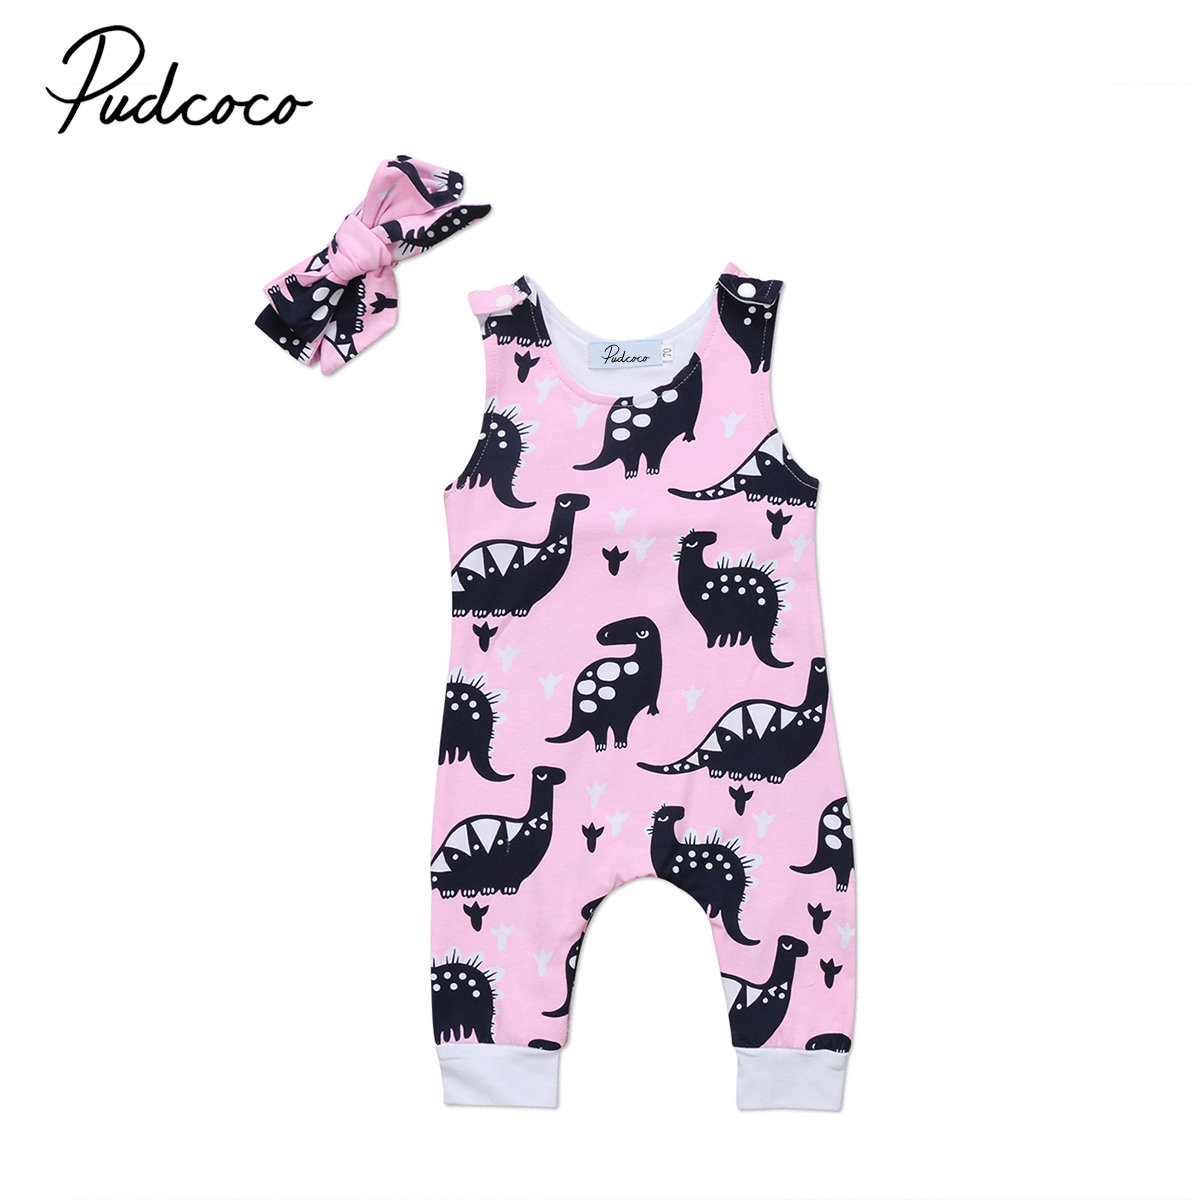 Sleeveless Romper Jumpsuit Dinosaur-Pattern Pink Toddler Baby-Girl Cute Newborn Outfit title=